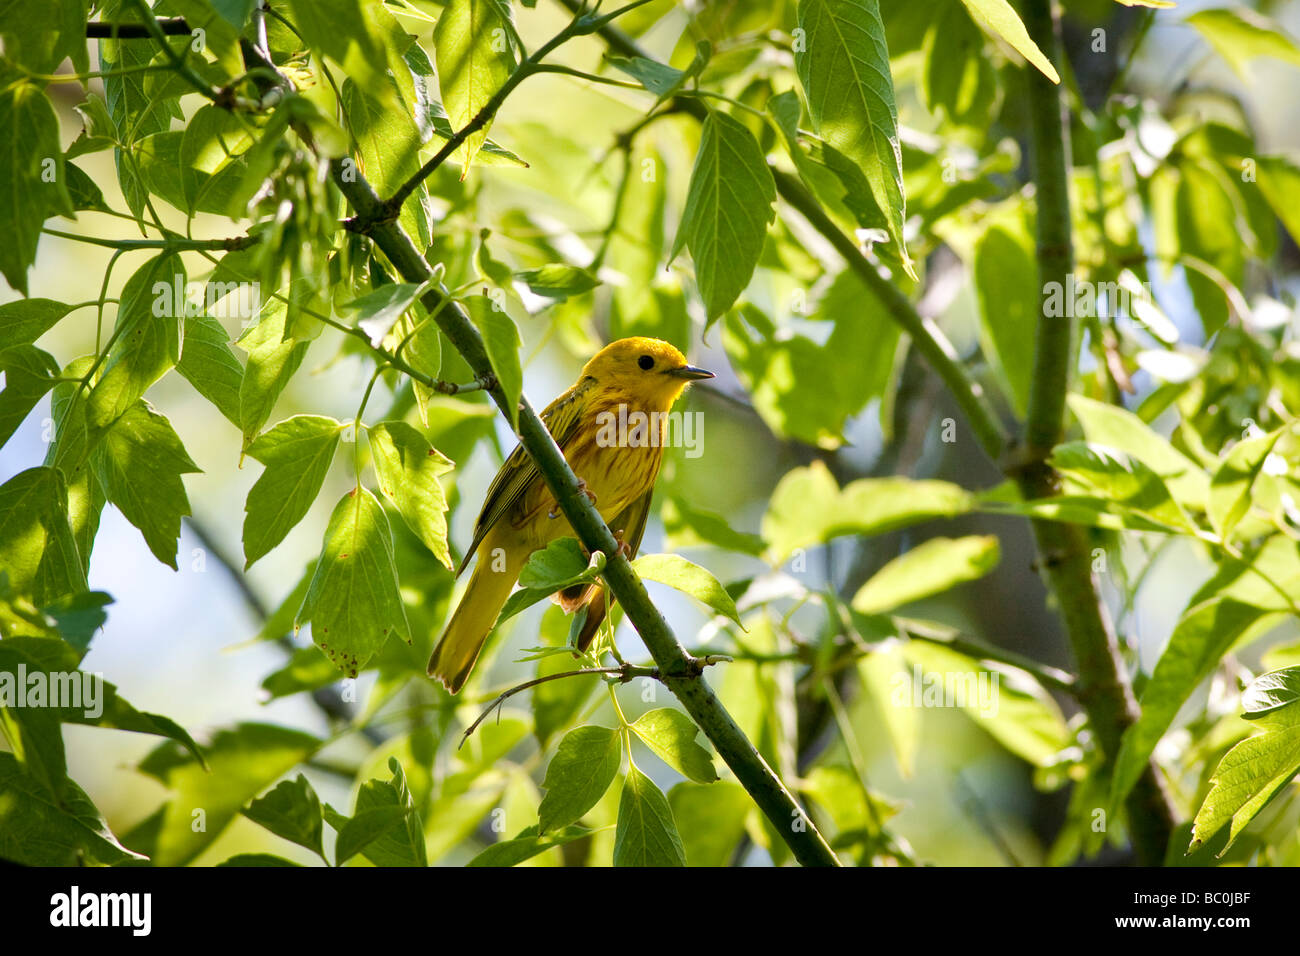 Yellow Warbler - Setophaga petechia – perched on a branch with green leaves - Stock Image